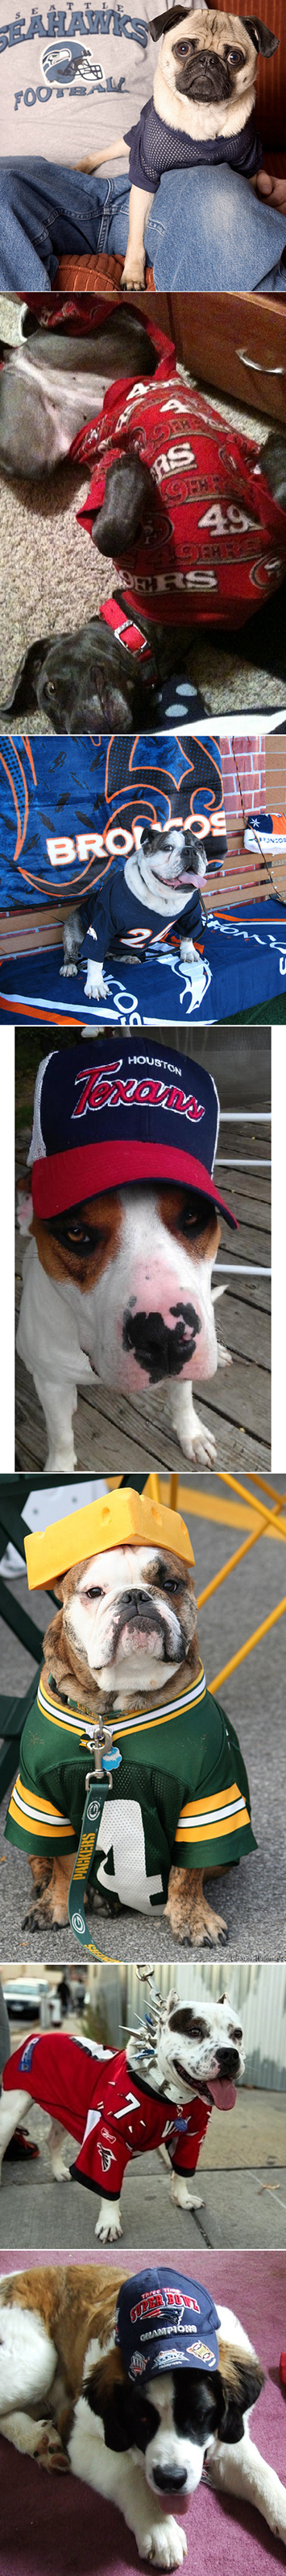 NFL Pups Show Their Team Spirit